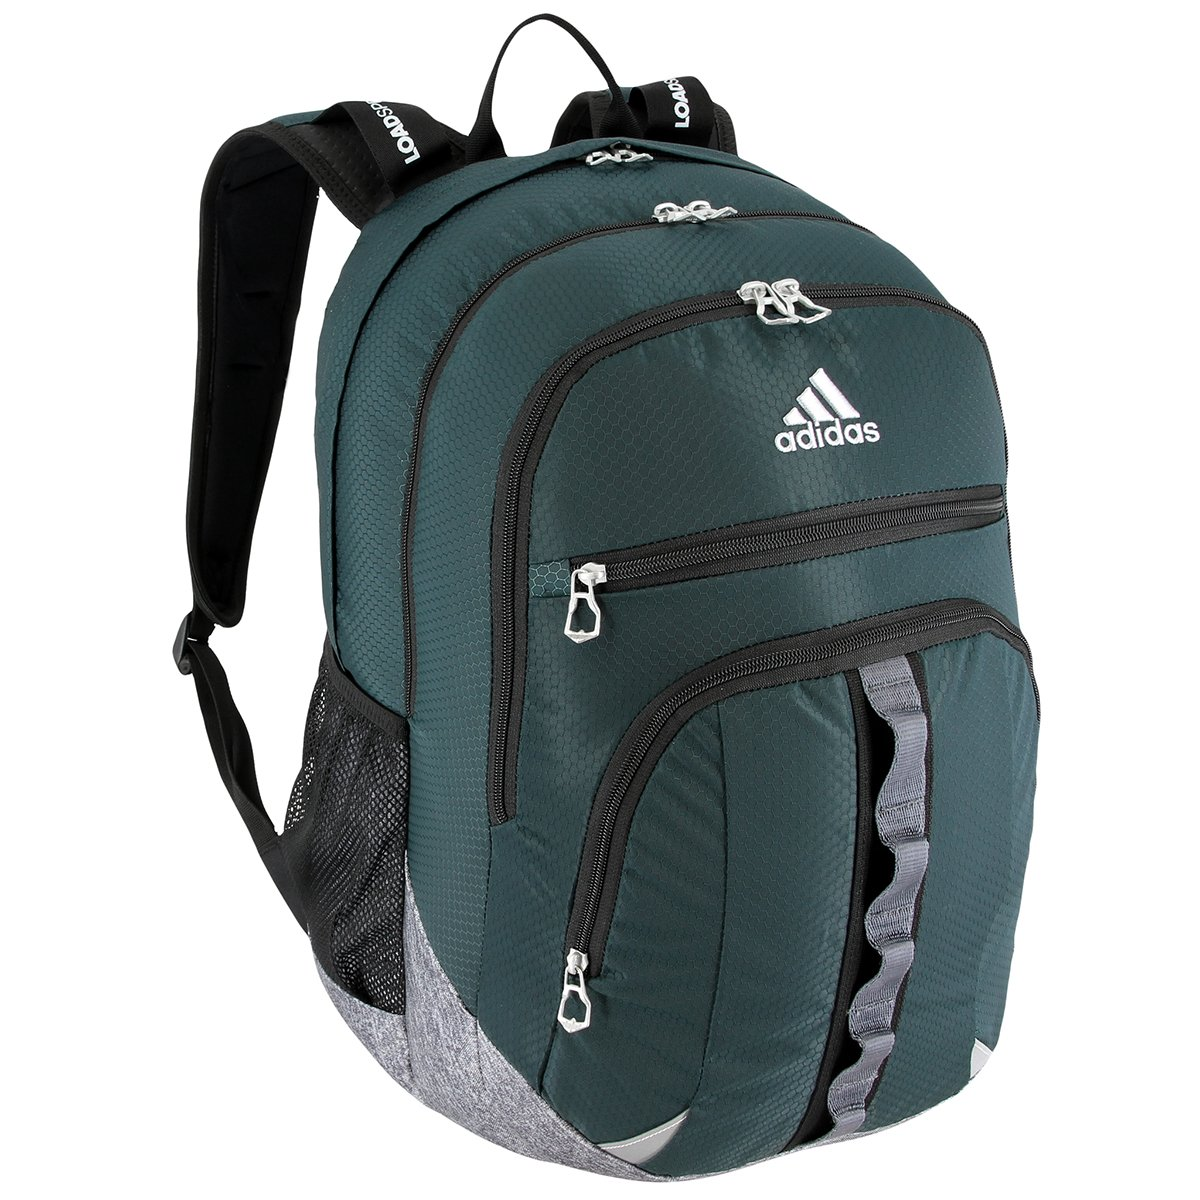 Galleon - Adidas Prime Backpack 3cca85a7c43b8